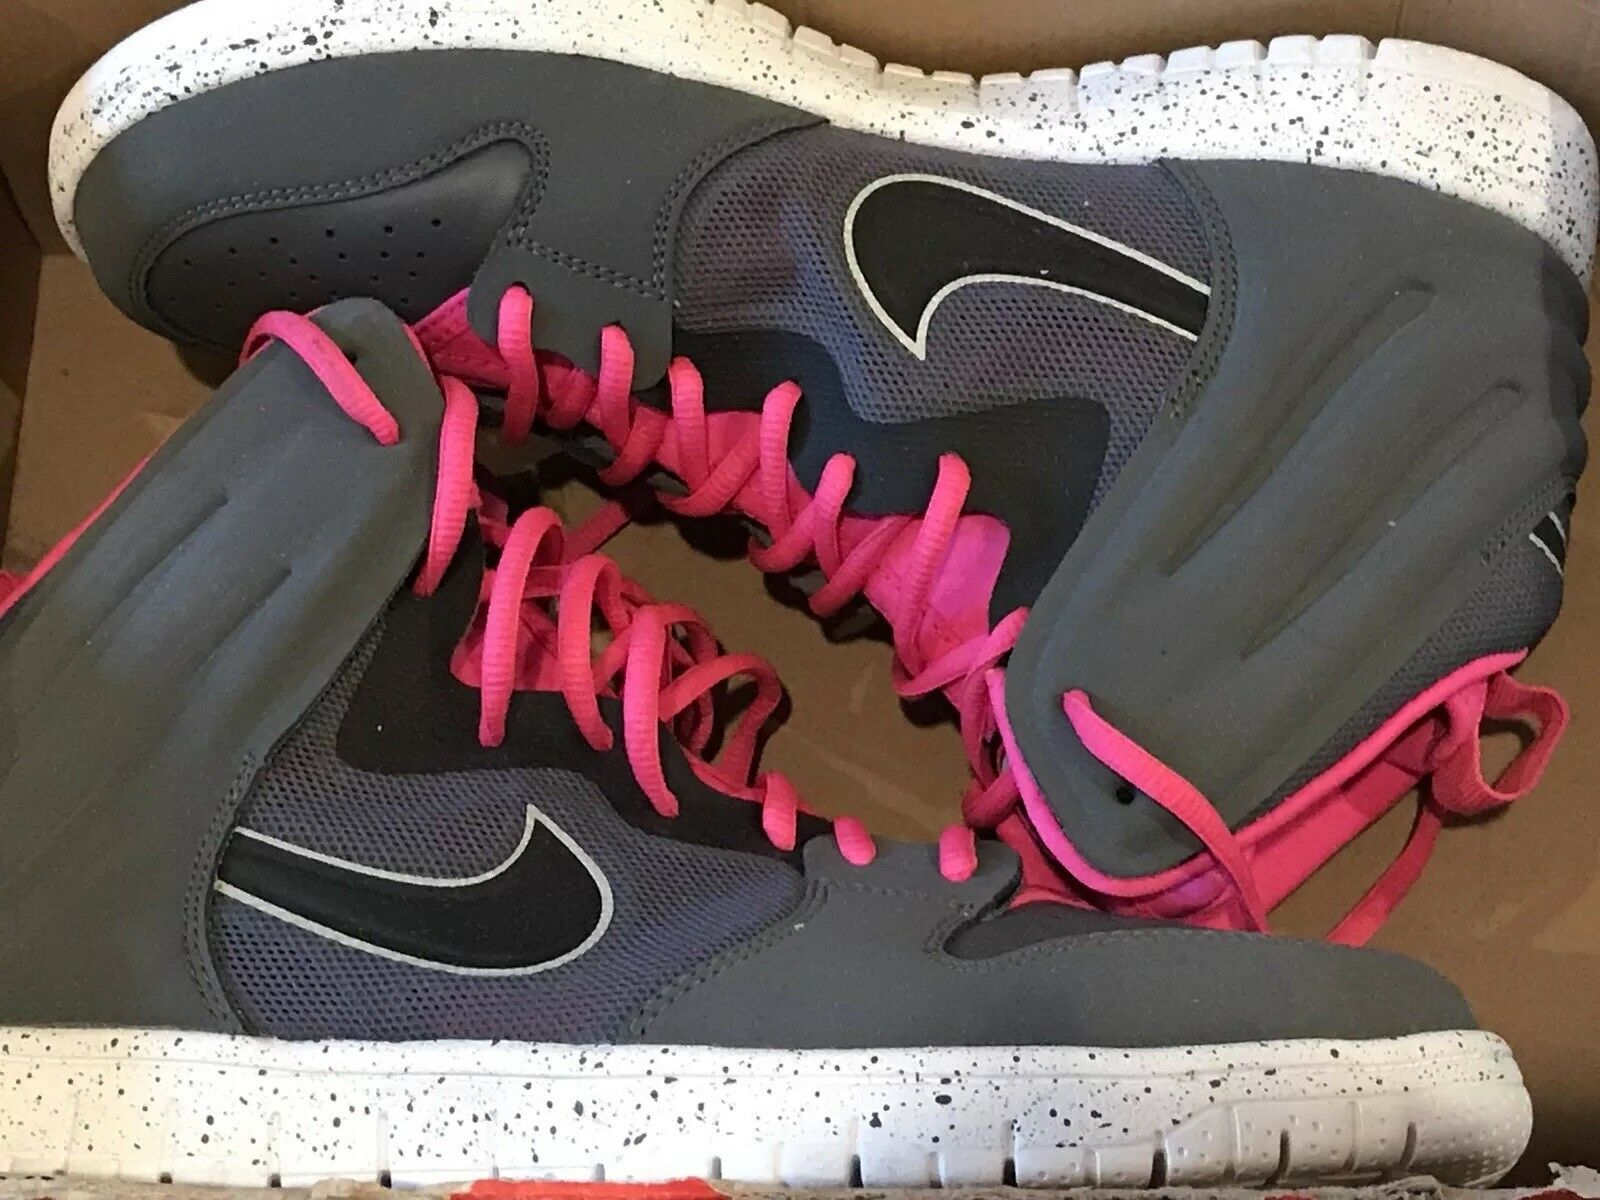 a2d49c21b55a ... New Nike Dunk Free Trainer Size 9.5 Gray Pink Pink Pink Black  599466-002 0a360f